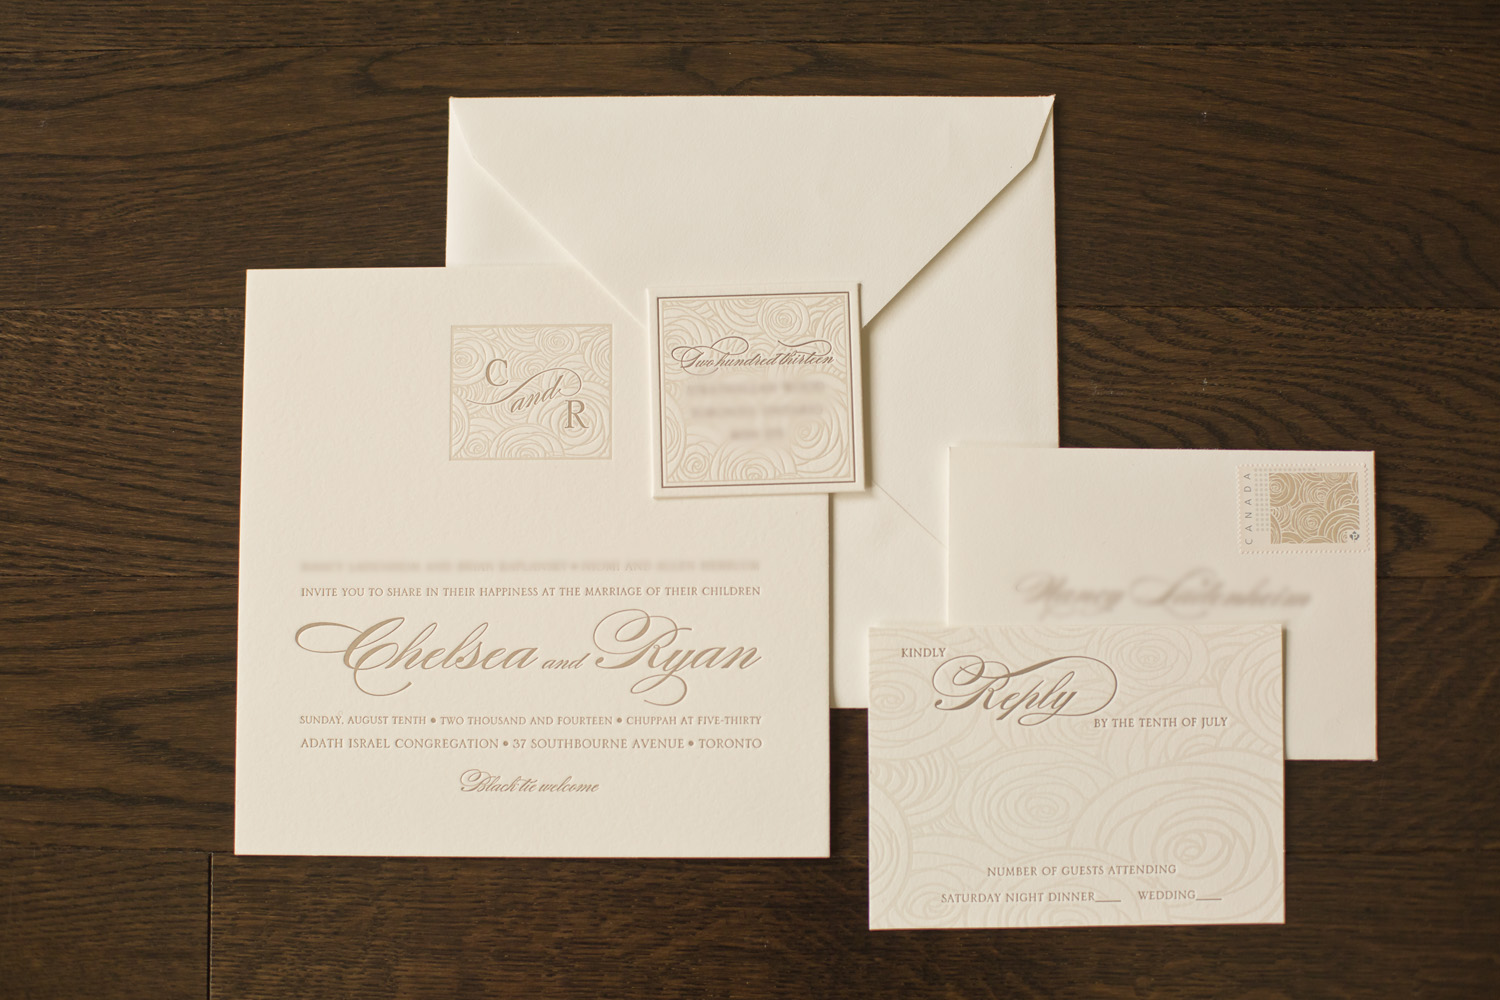 Elegant invitation package